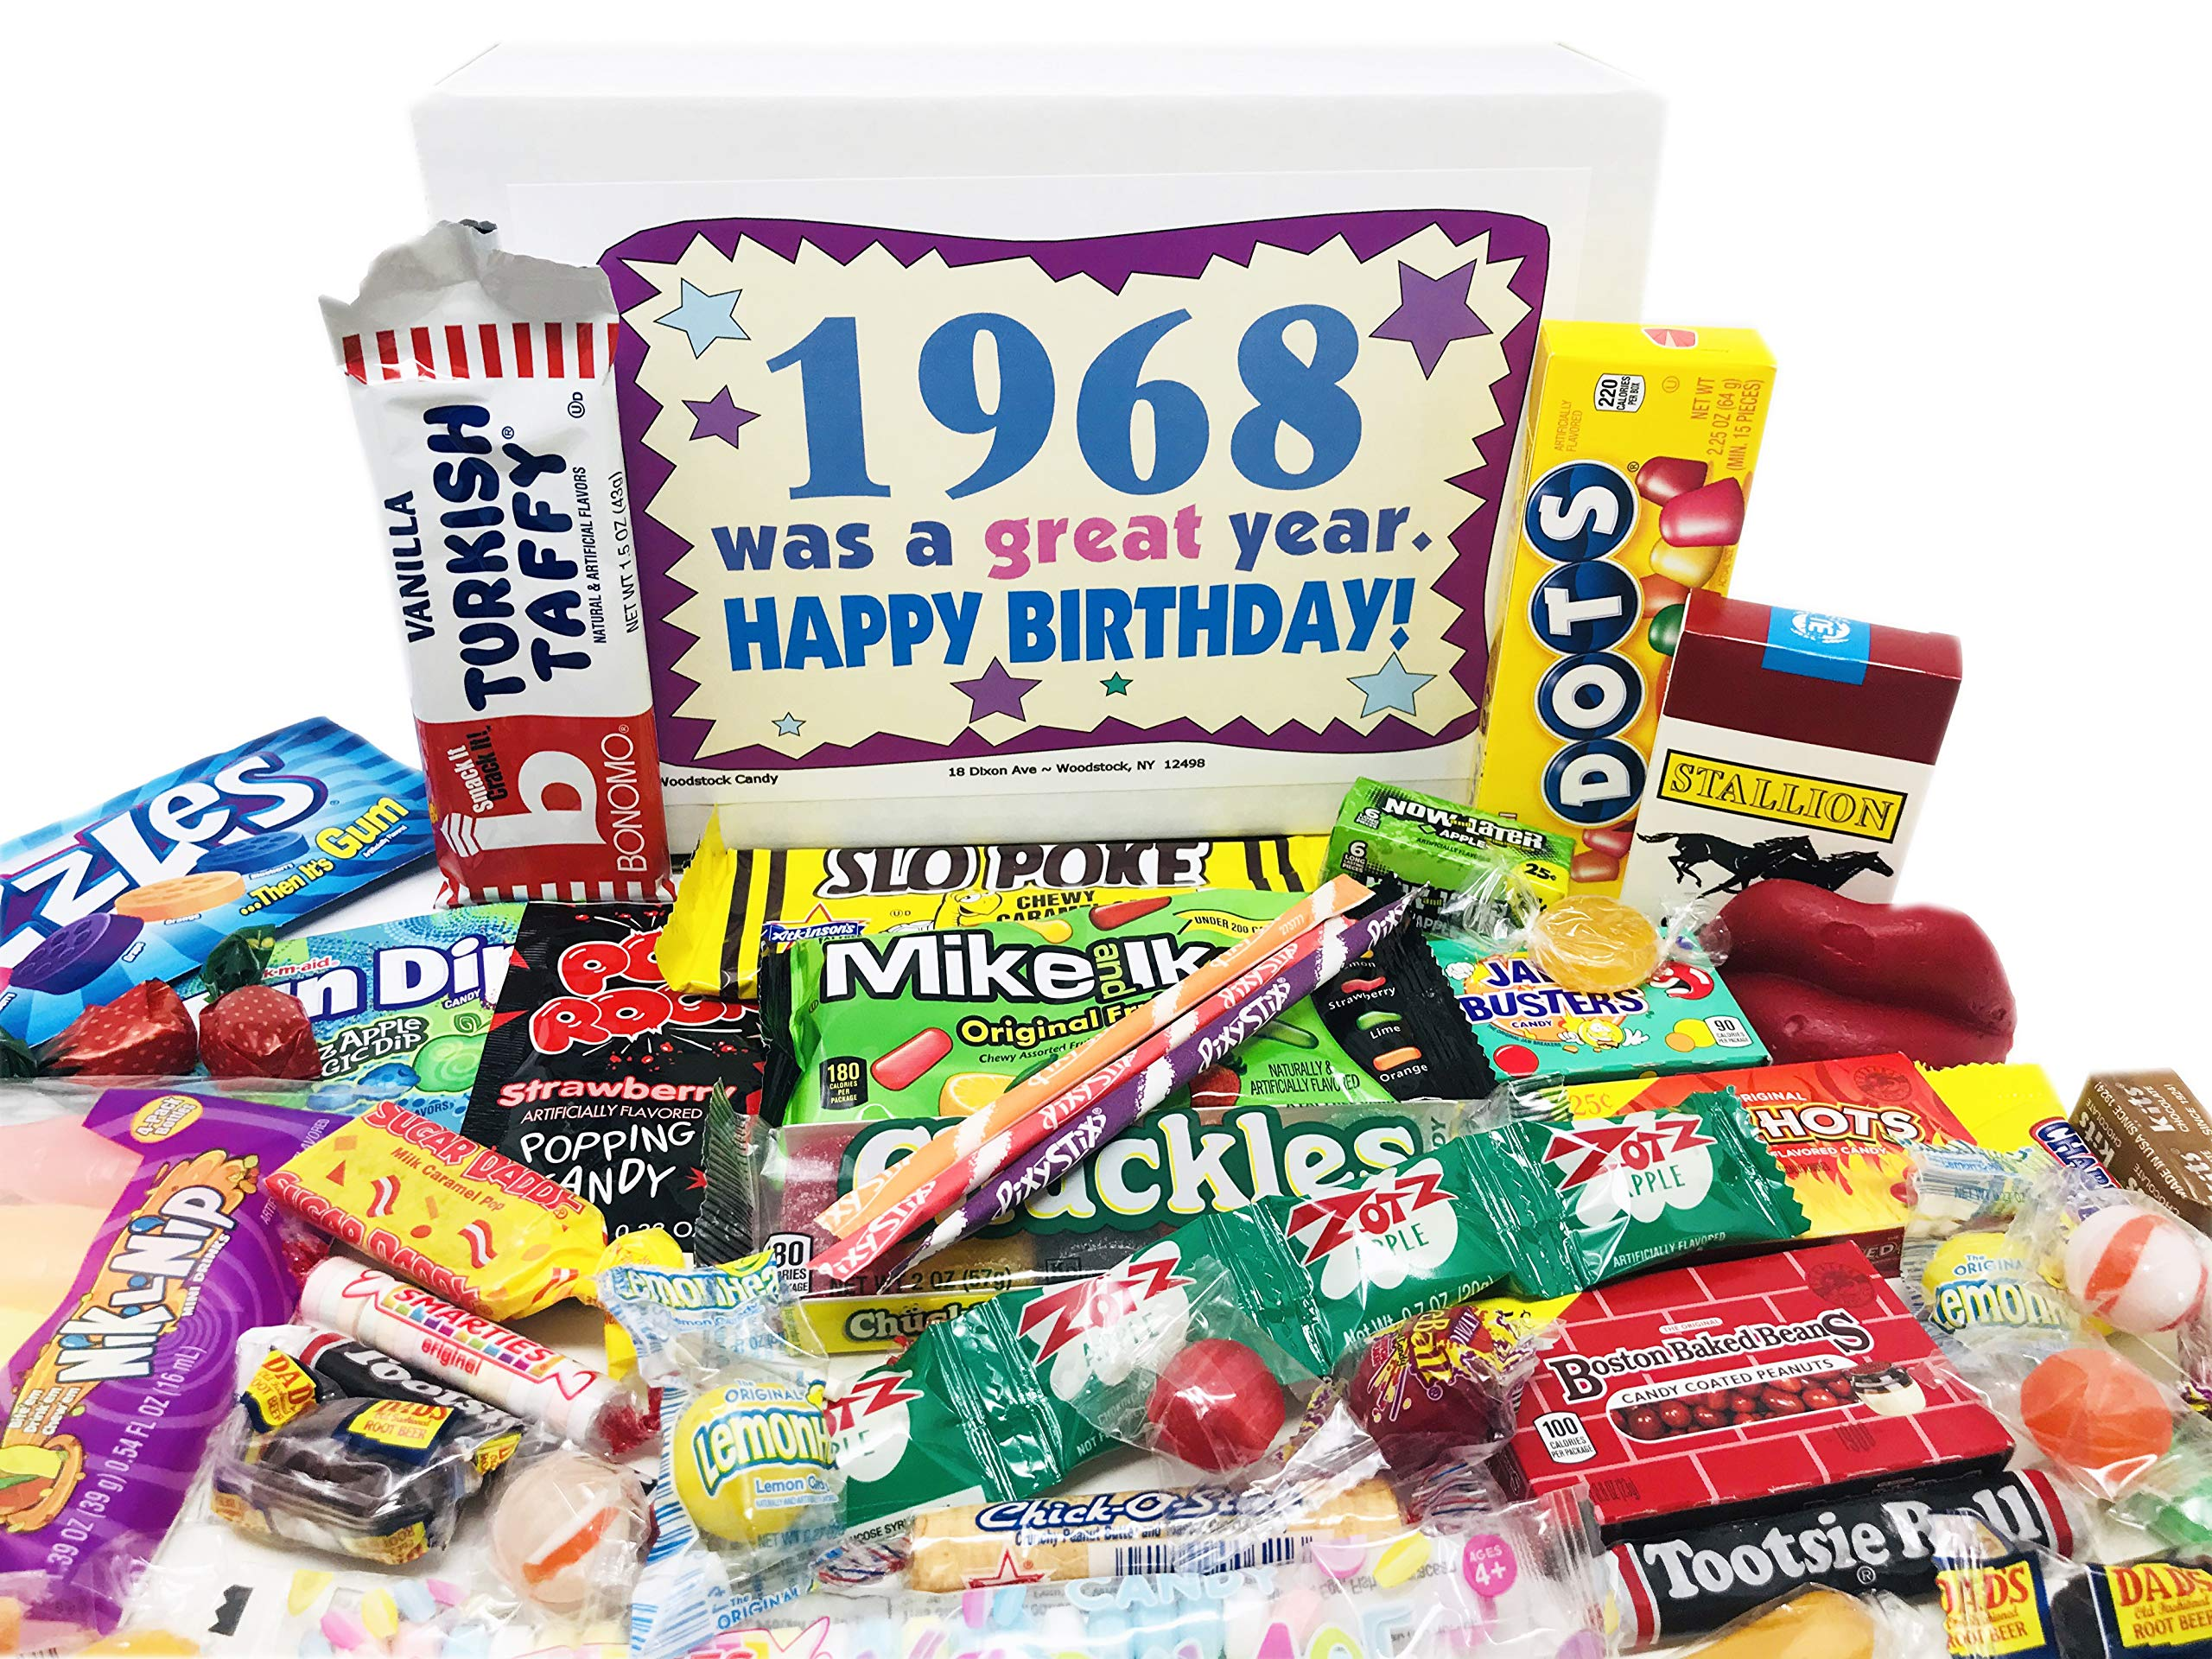 Woodstock Candy 1968 53rd Birthday Gift Box Nostalgic Retro Candy Mix From Childhood For 53 Year Old Man Or Woman Born 1968 Jr Buy Online In Cayman Islands At Cayman Desertcart Com Productid 25799089